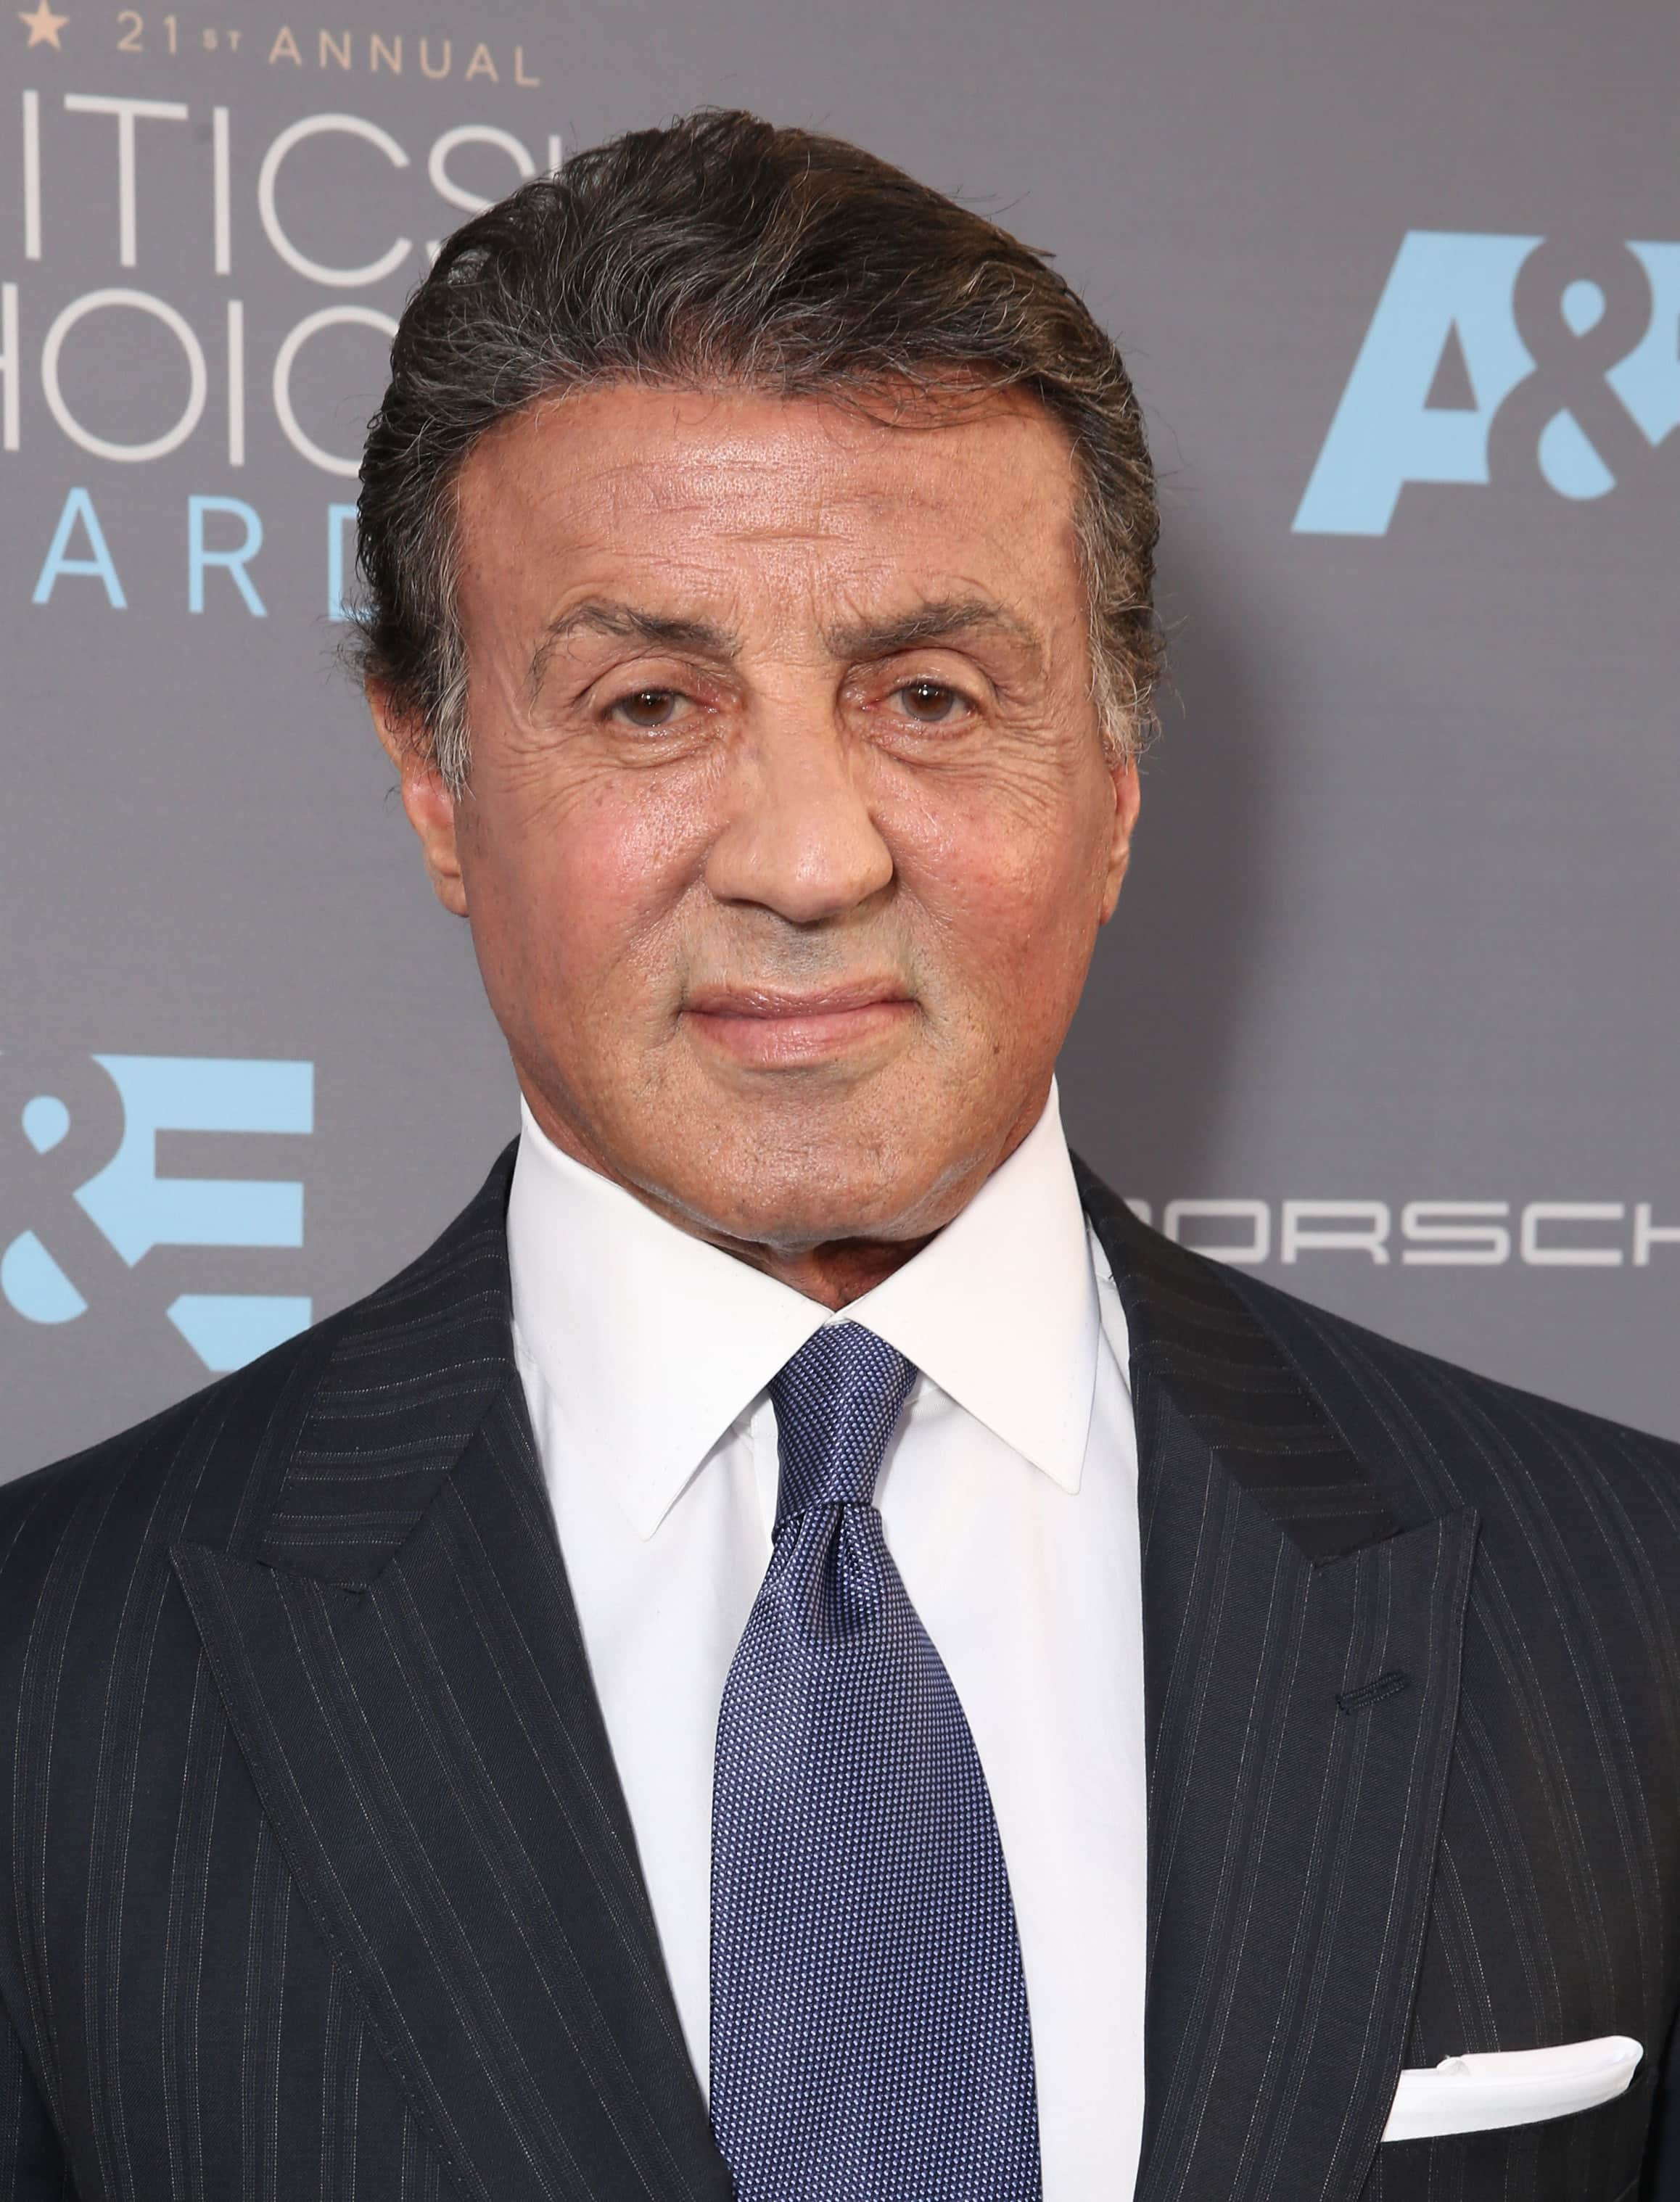 Sylvester Stallone To Direct And Produce 'Creed 2'